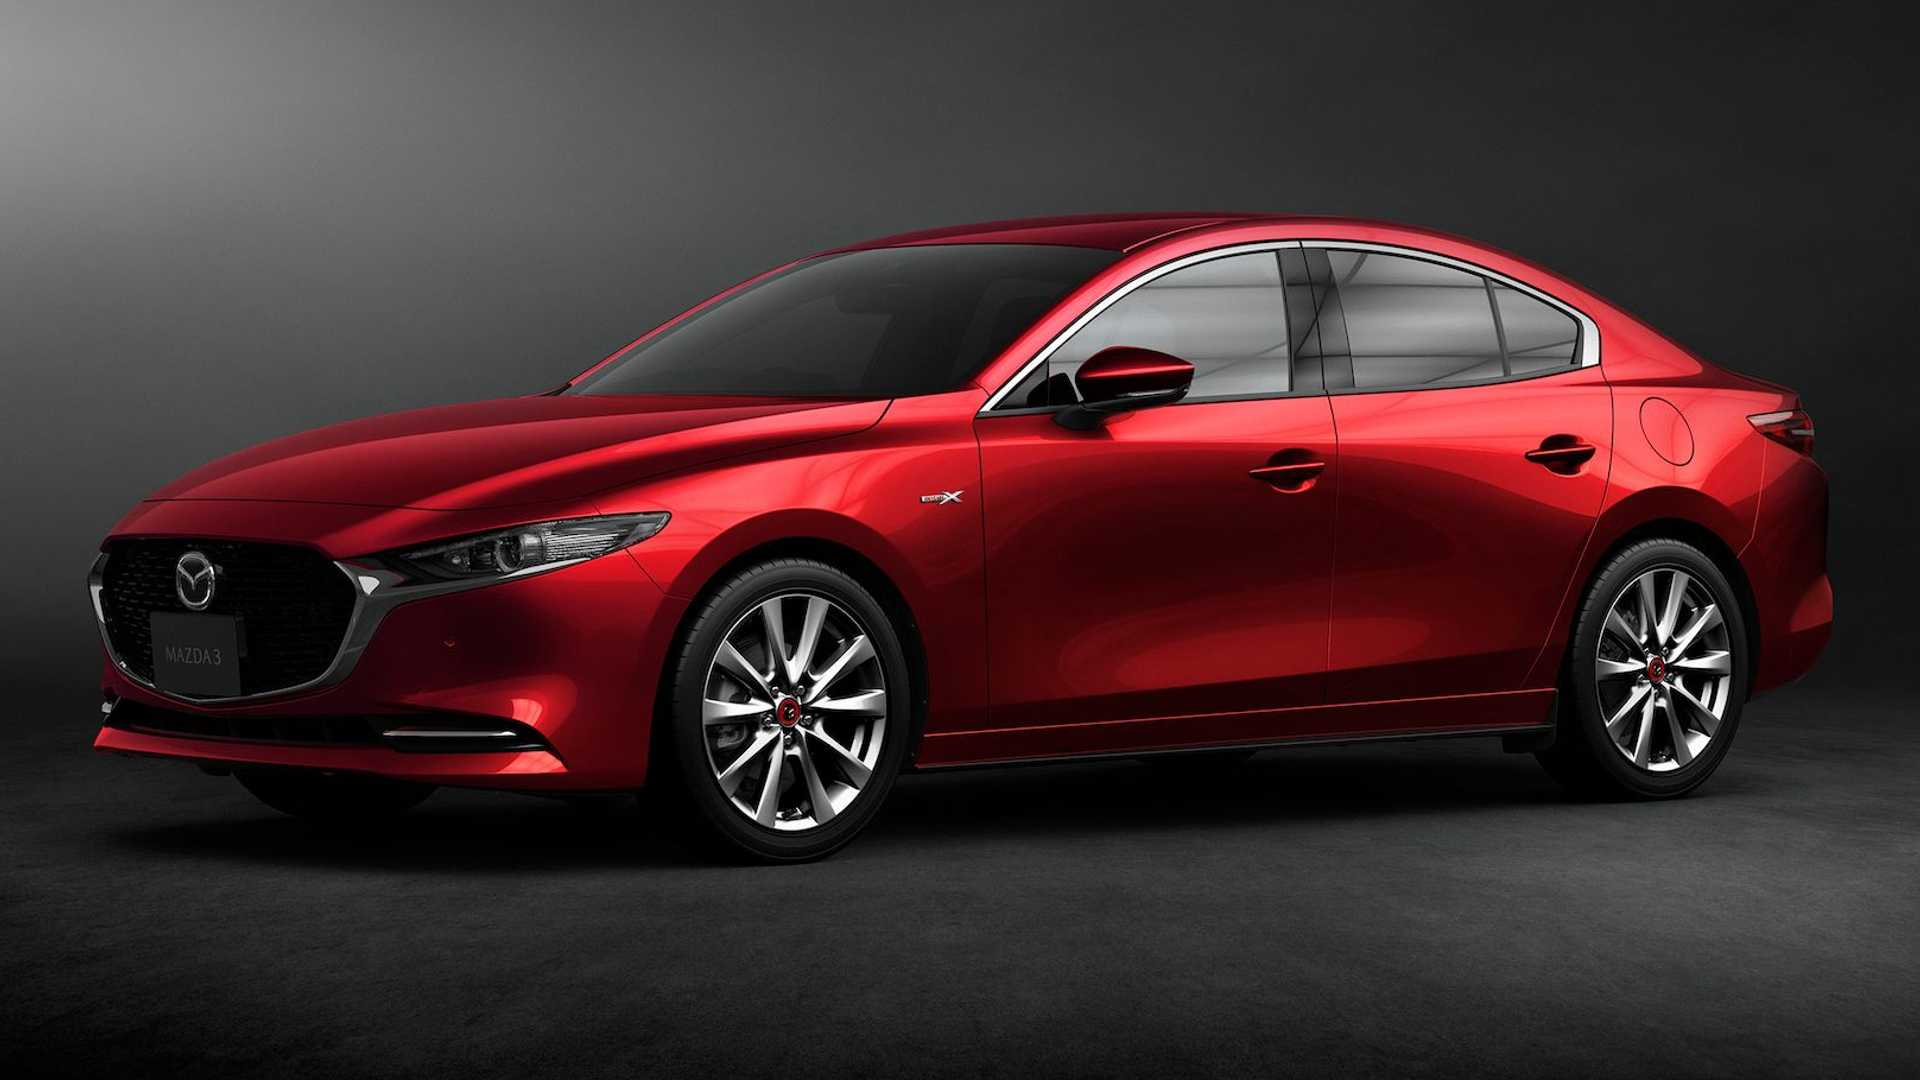 Mazda has upgraded its Model 3 sedan and hatchback in Japan, improving engine power and adding a new special trim level.